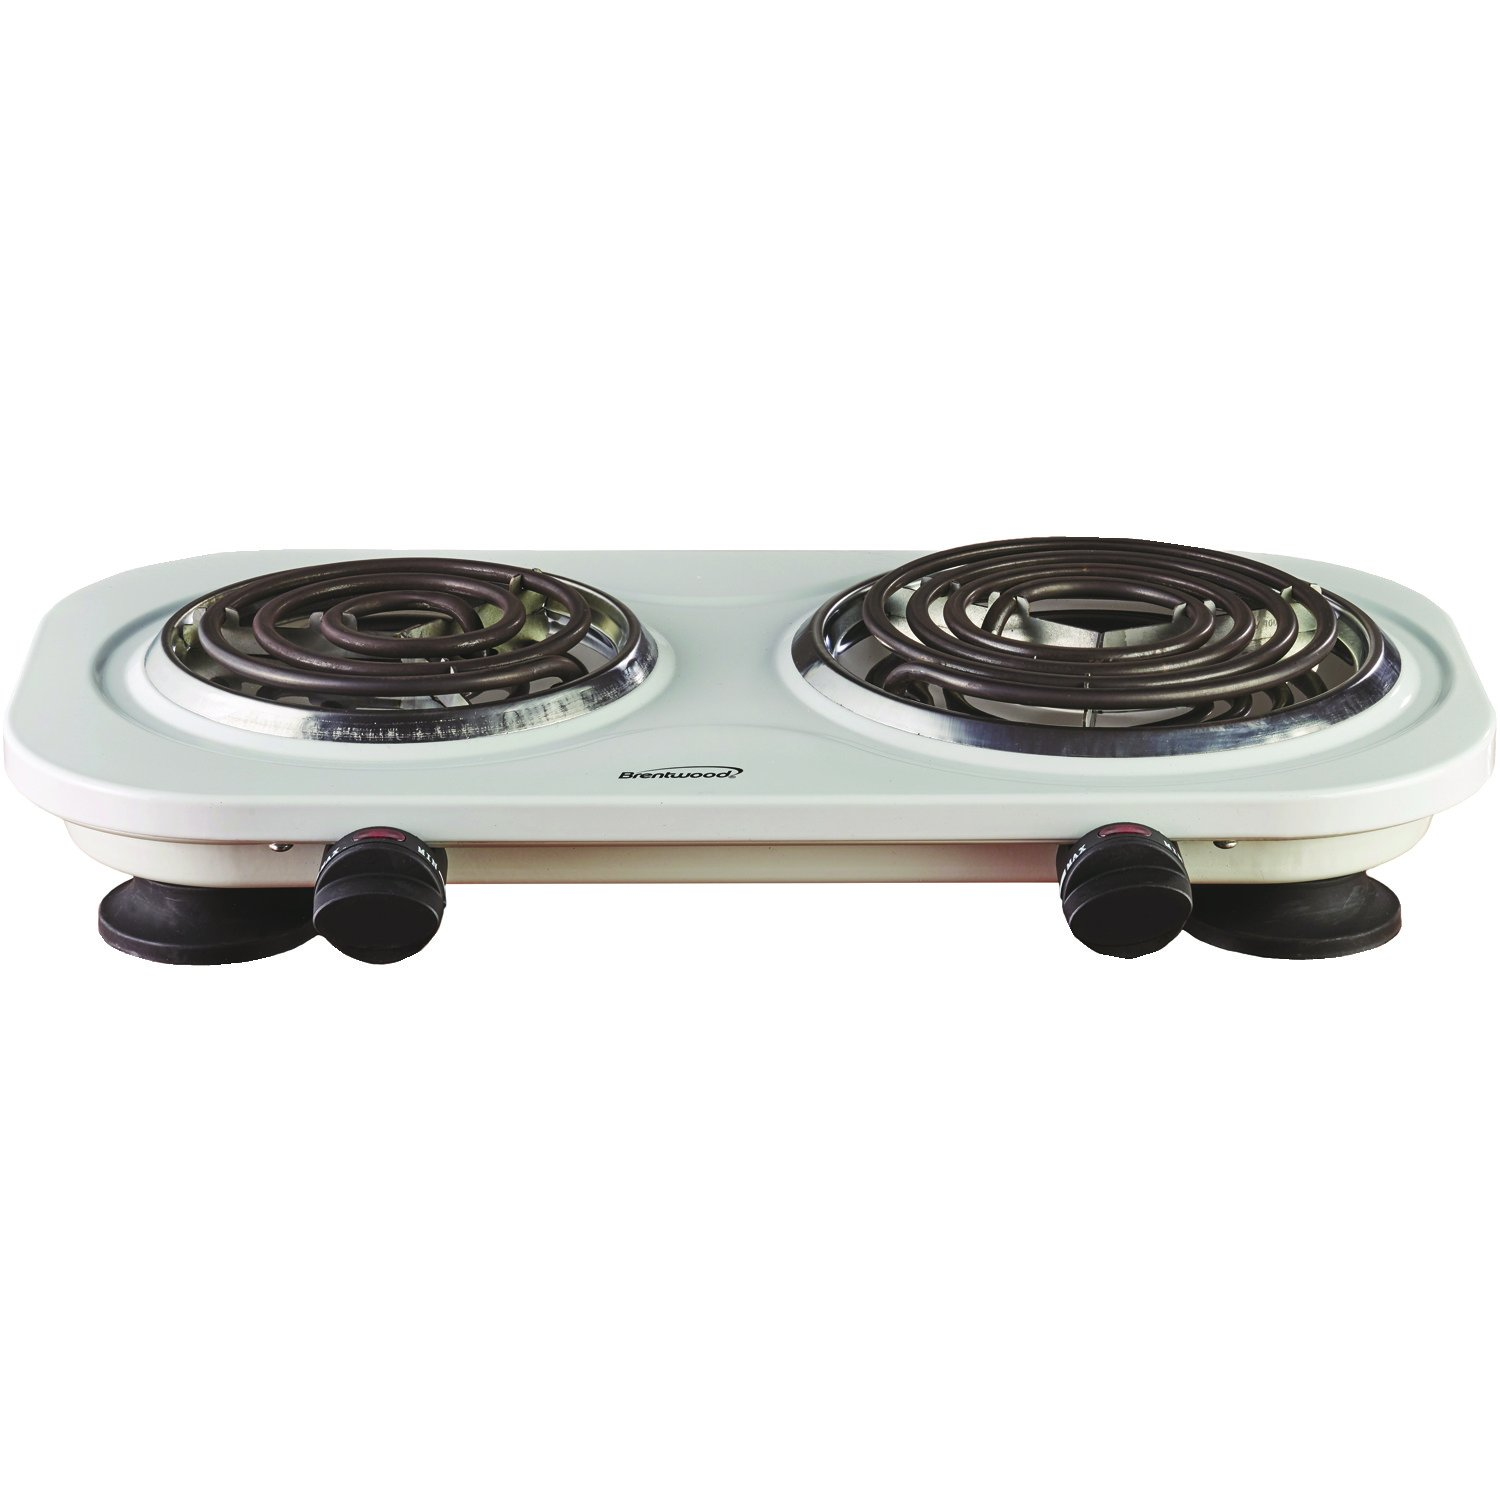 Brentwood TS-321W 1000w Single Electric Burner, White by Brentwood (Image #1)